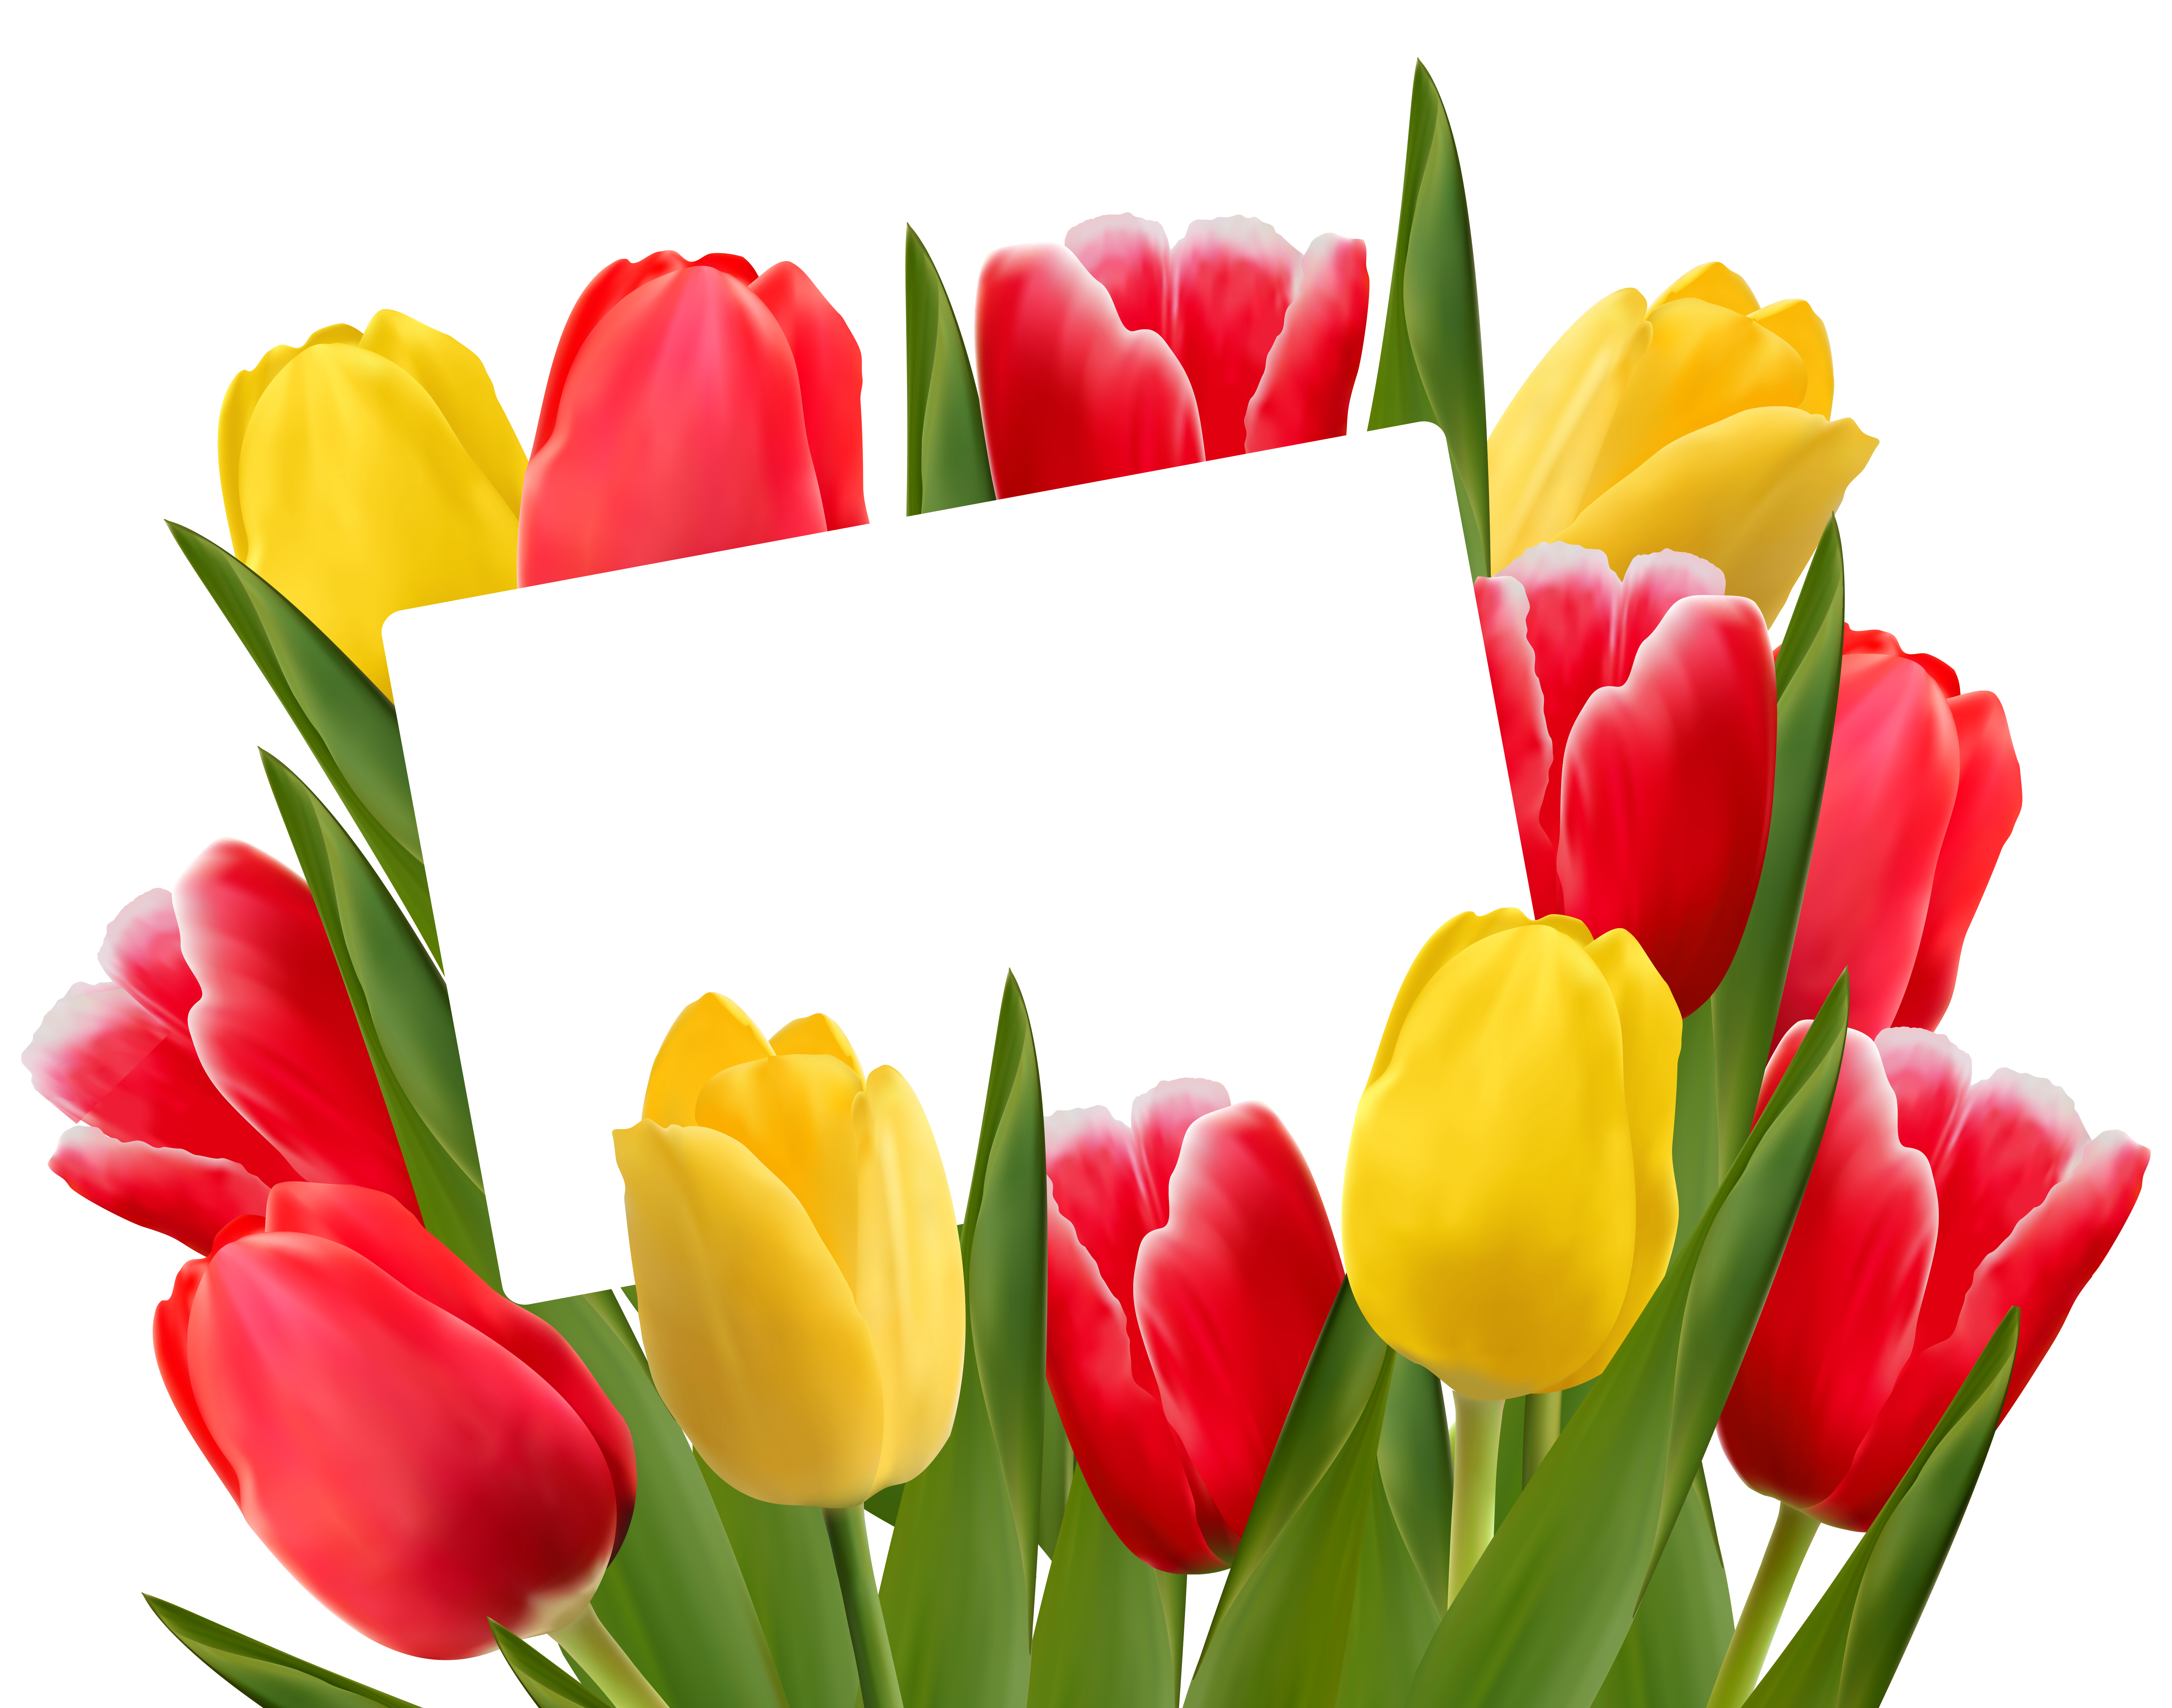 6373x5011 Red And Yellow Tulips Clip Art Cliparts